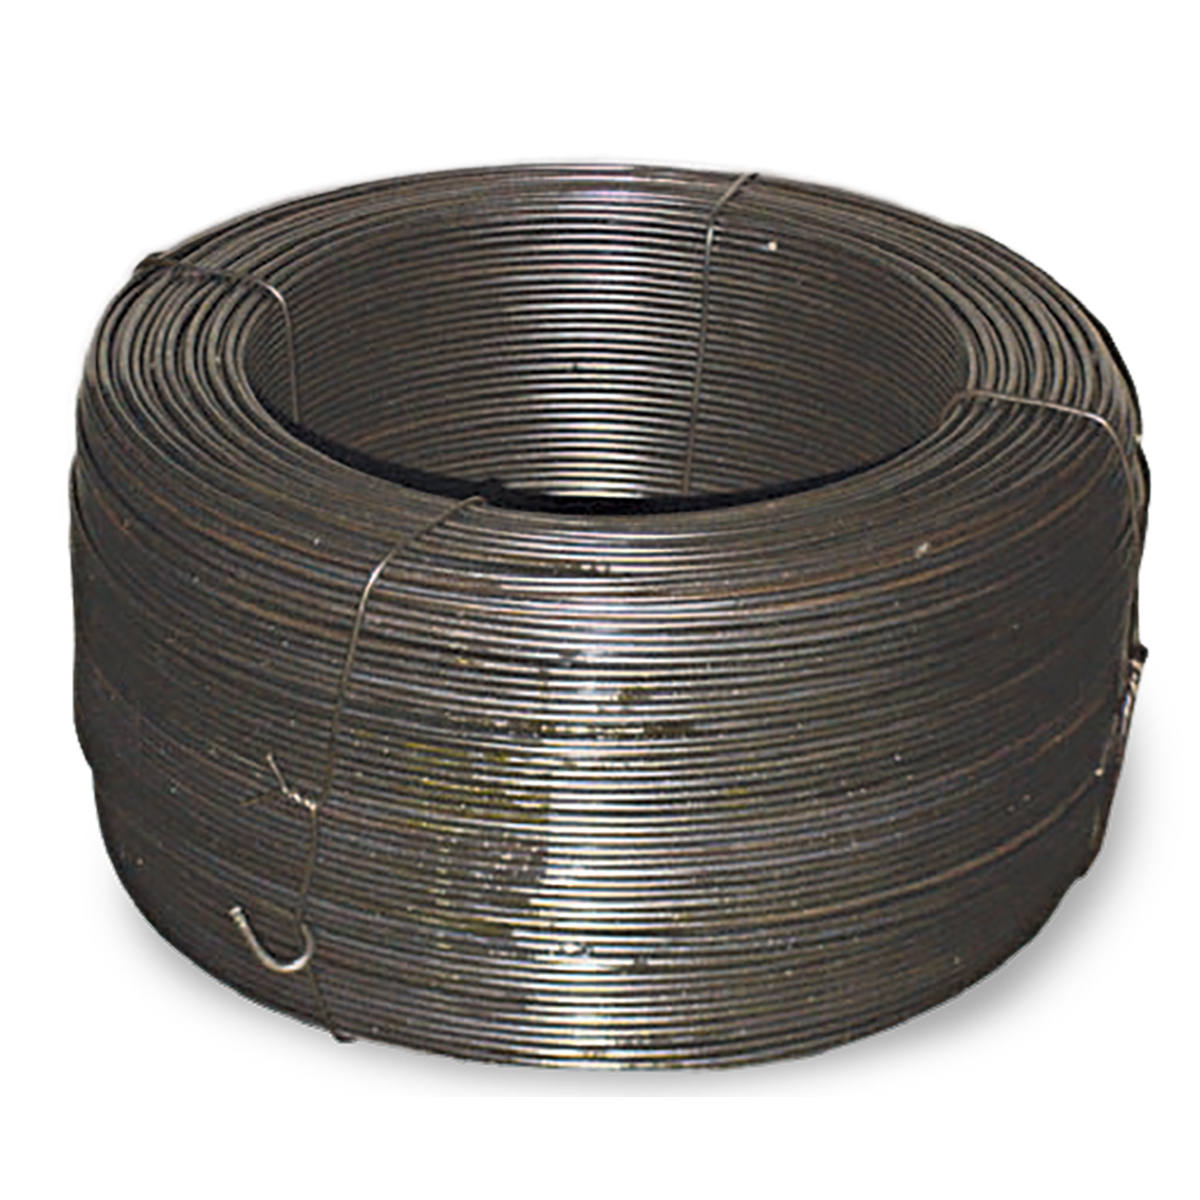 29525 29526 29532 Annealed Baling Wire Coil Galv